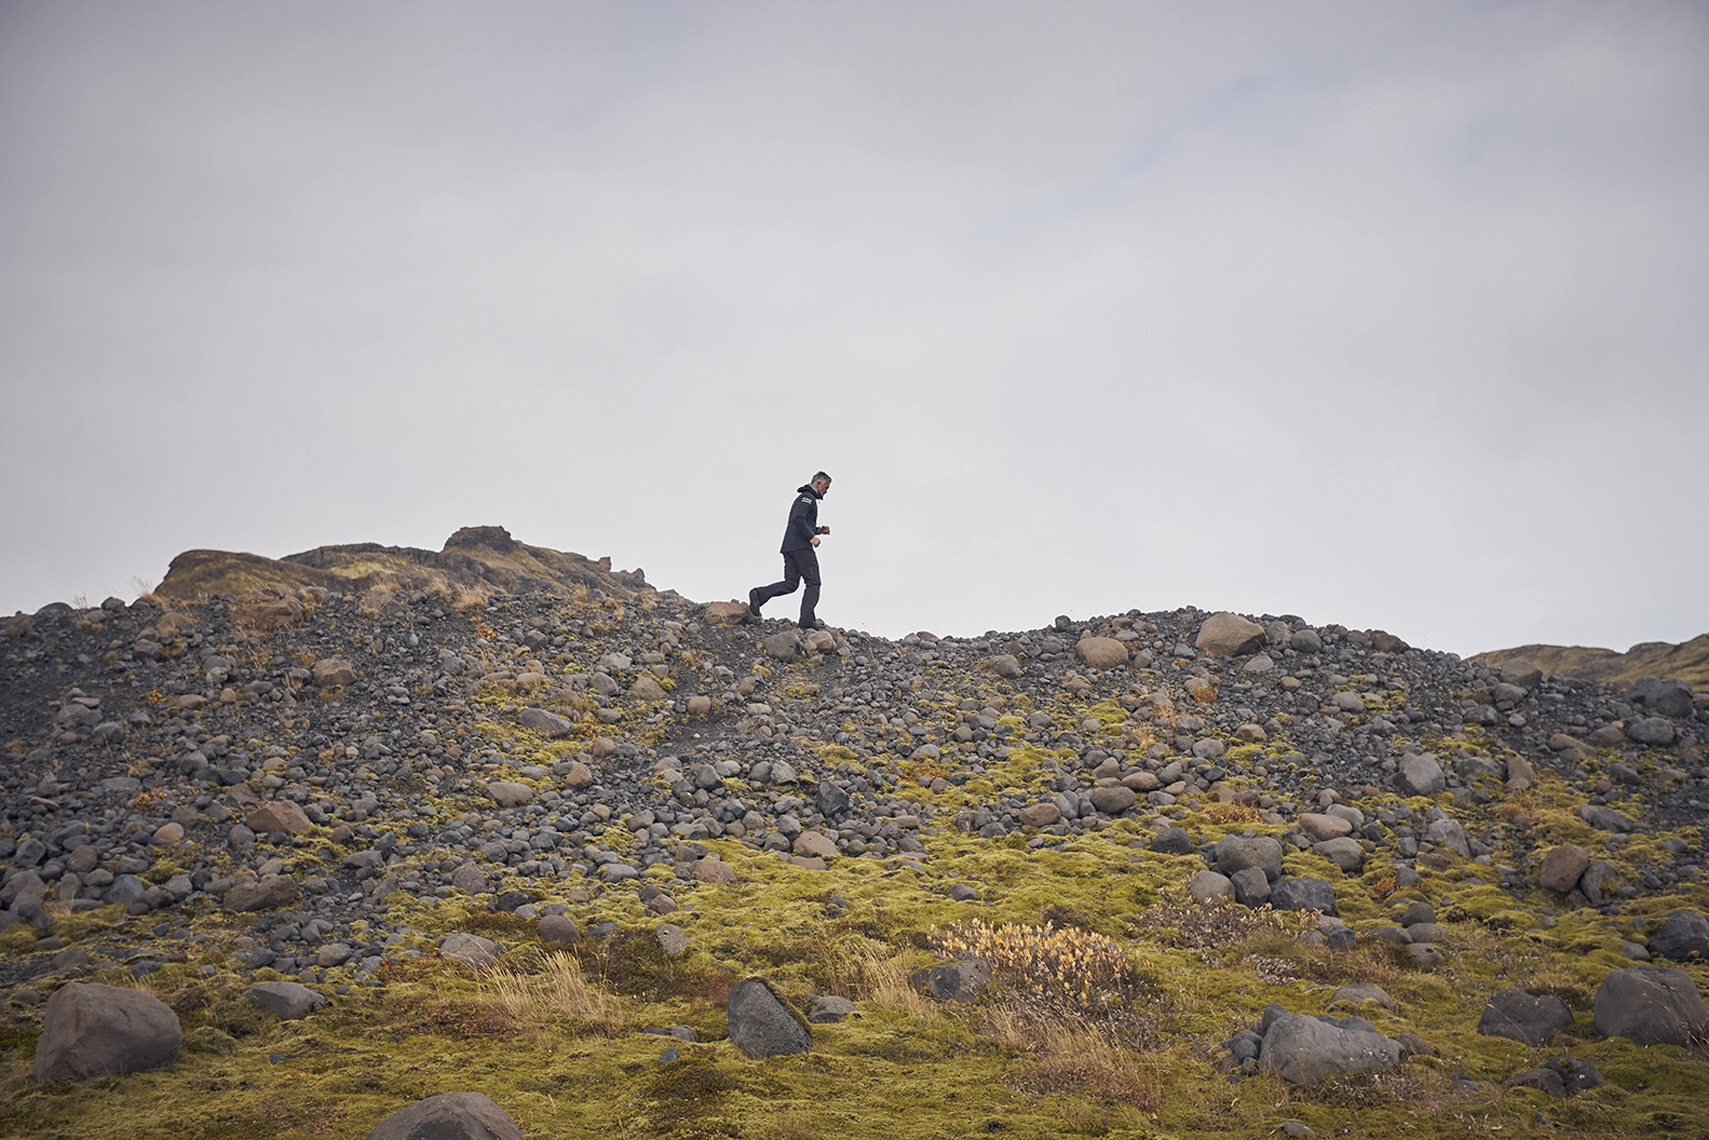 20191021-55_ICELAND-ANDRES-DREAM-OTHER-RUNNING-SHOTS_6377